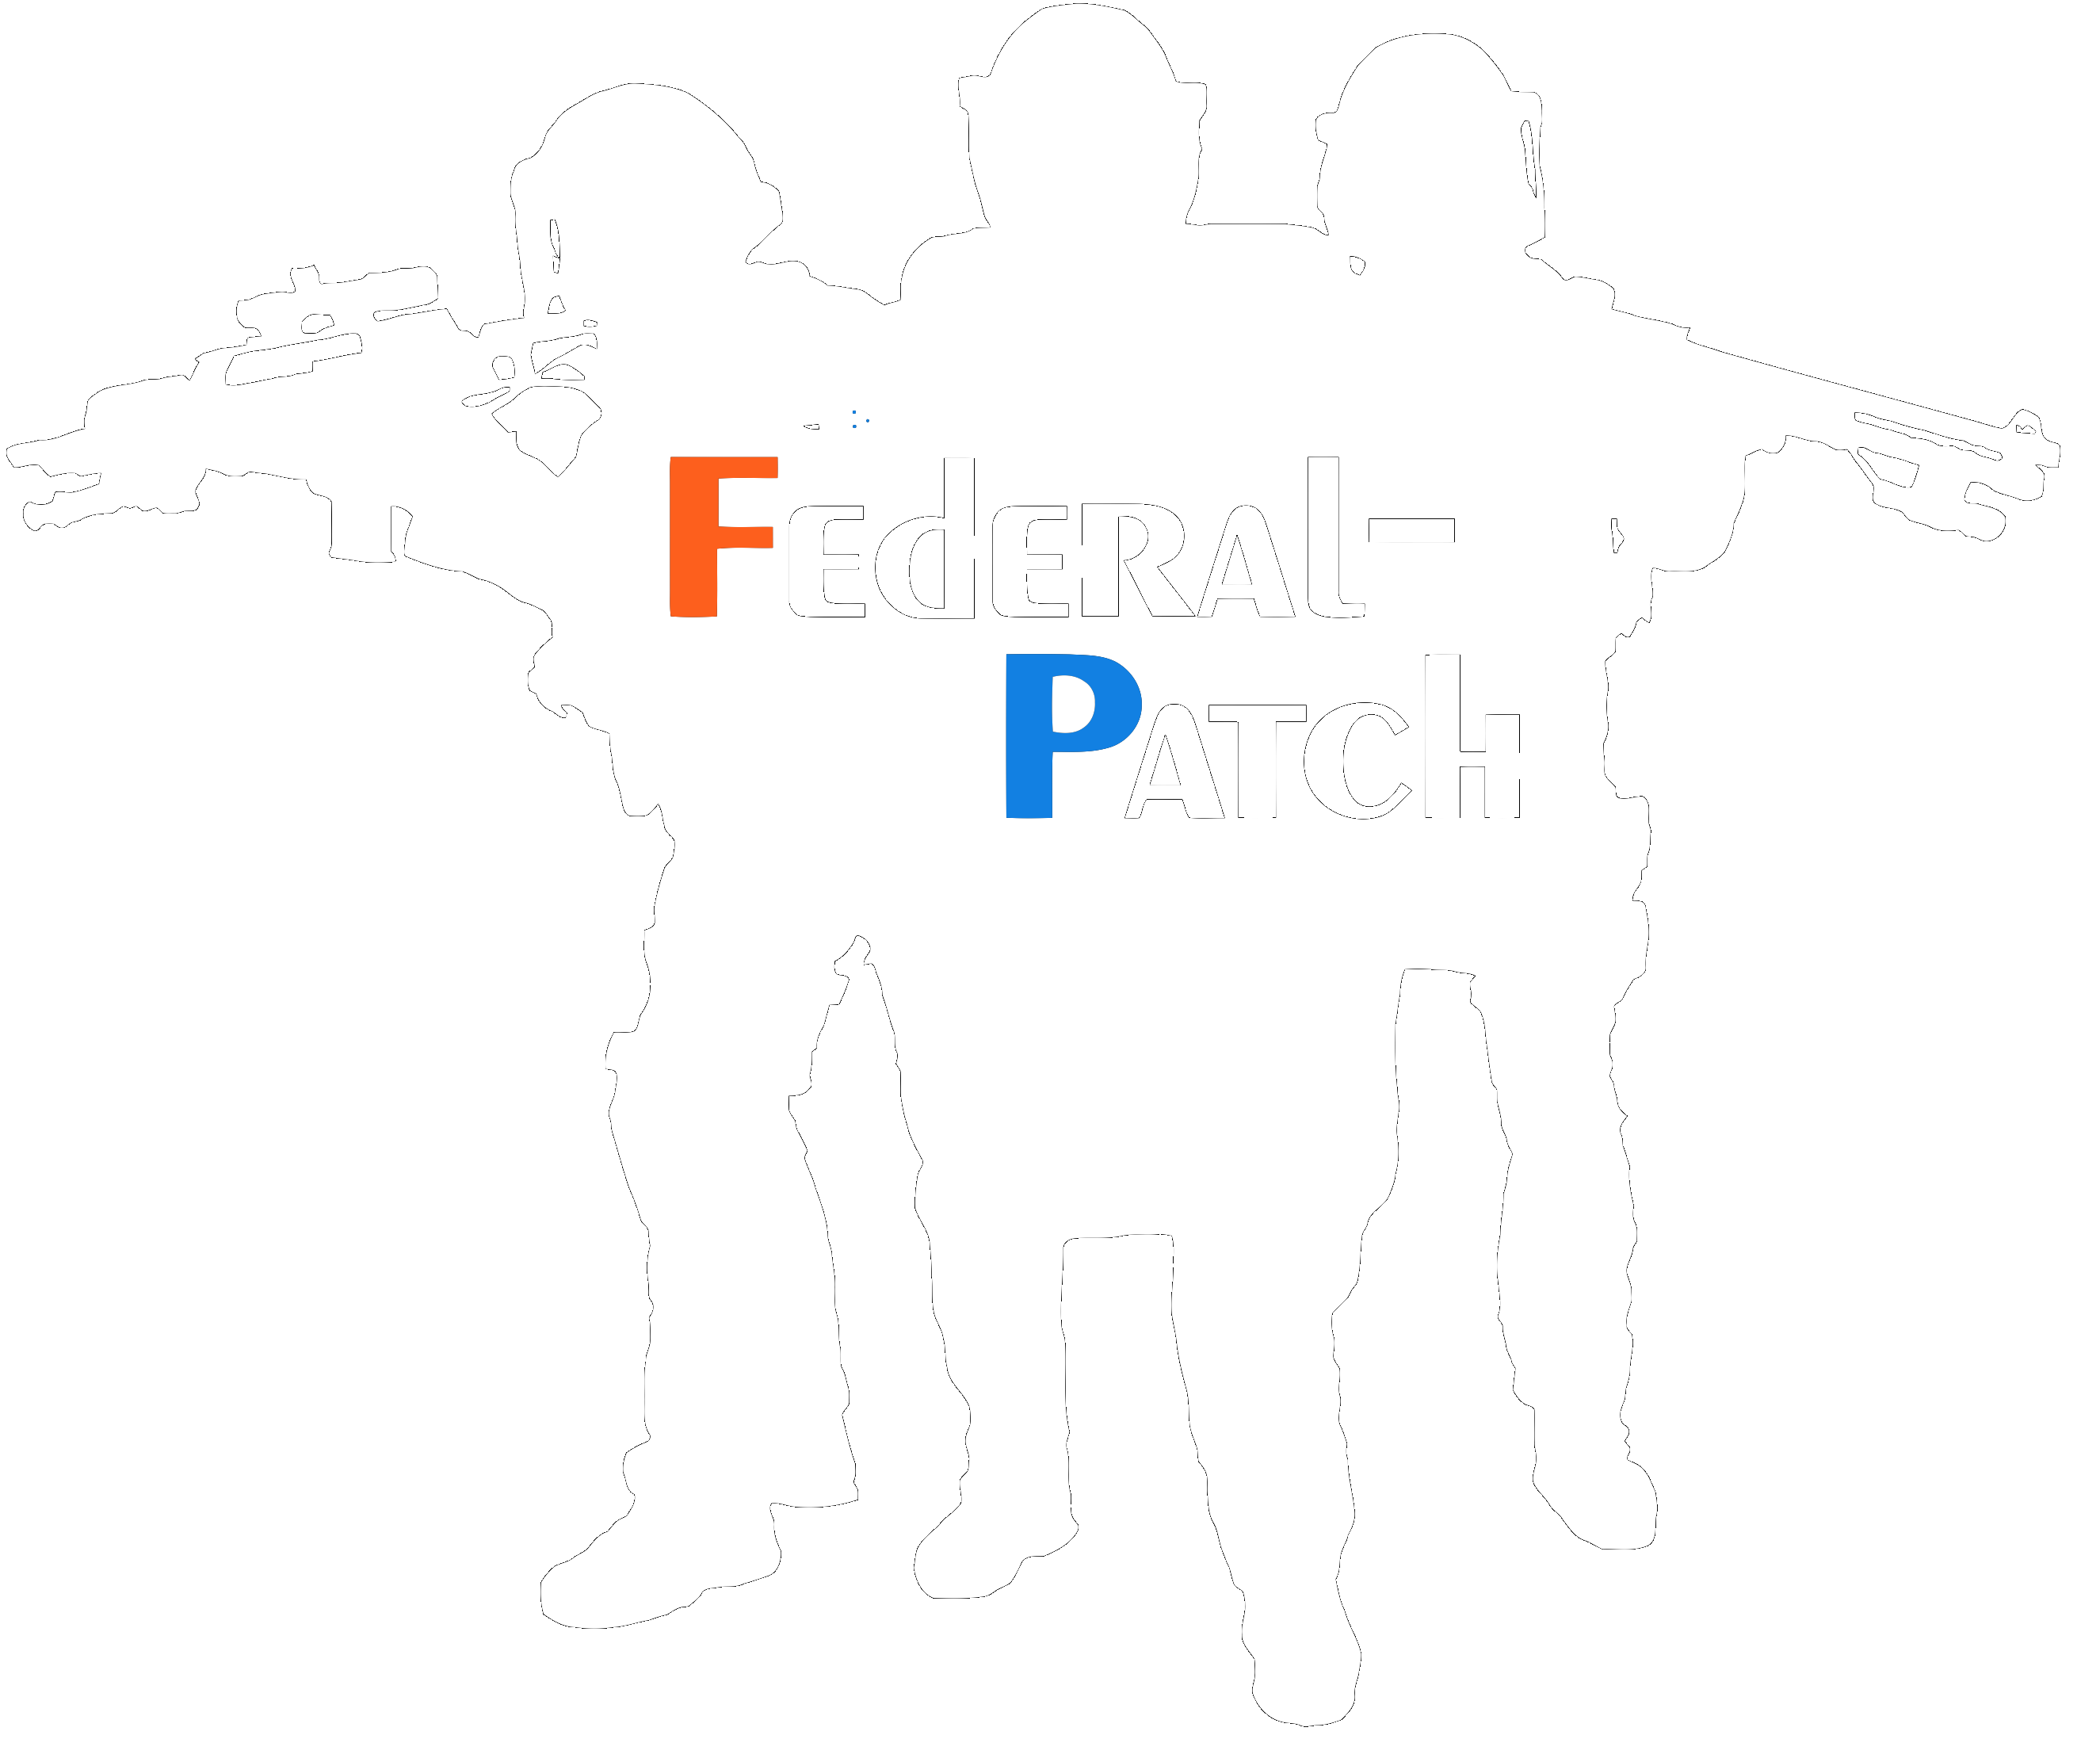 Federal Patch